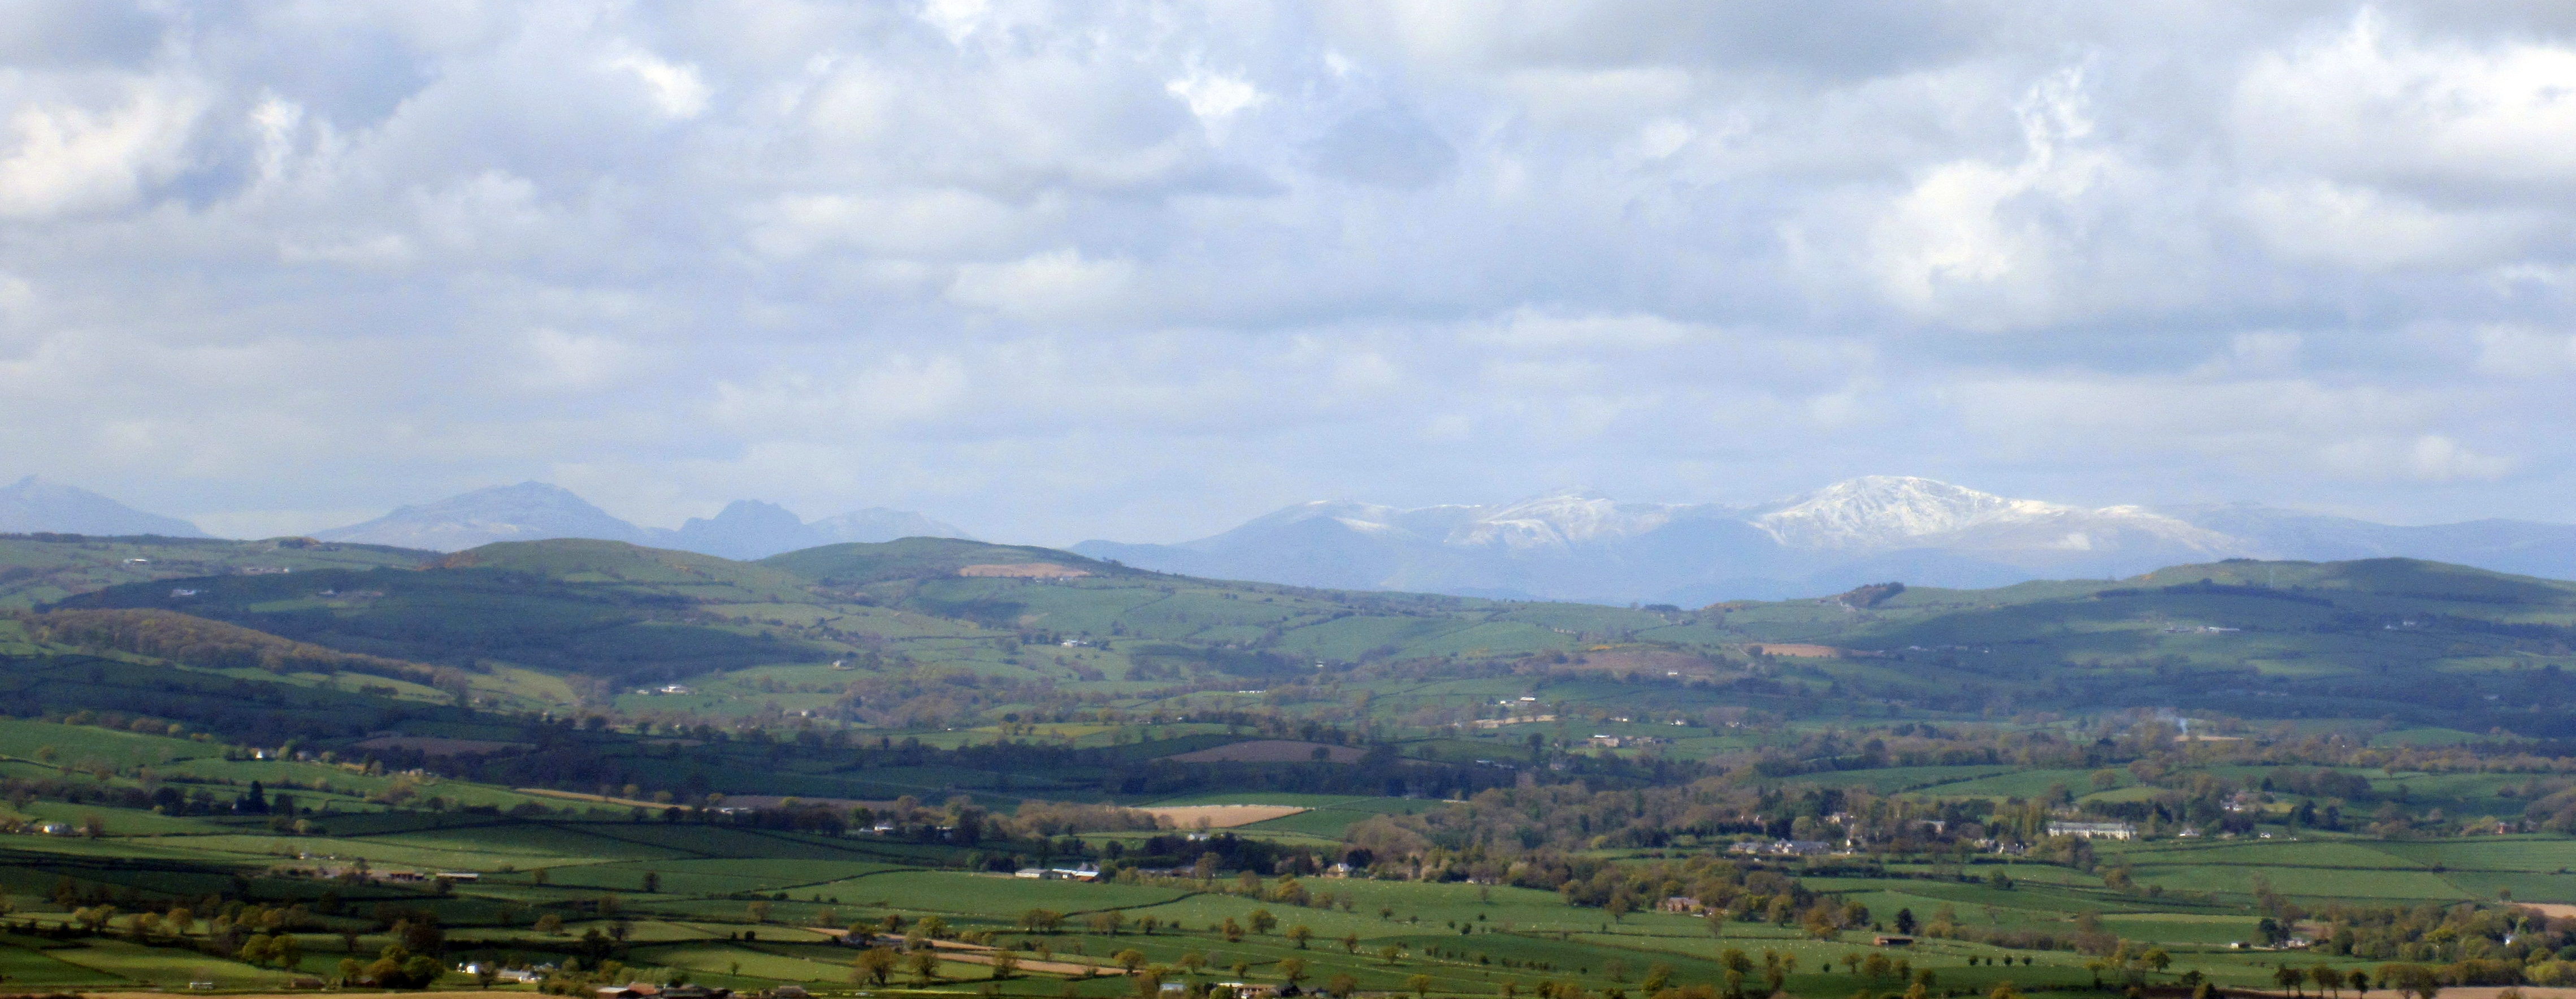 Views from Moel Famau to Snowdon